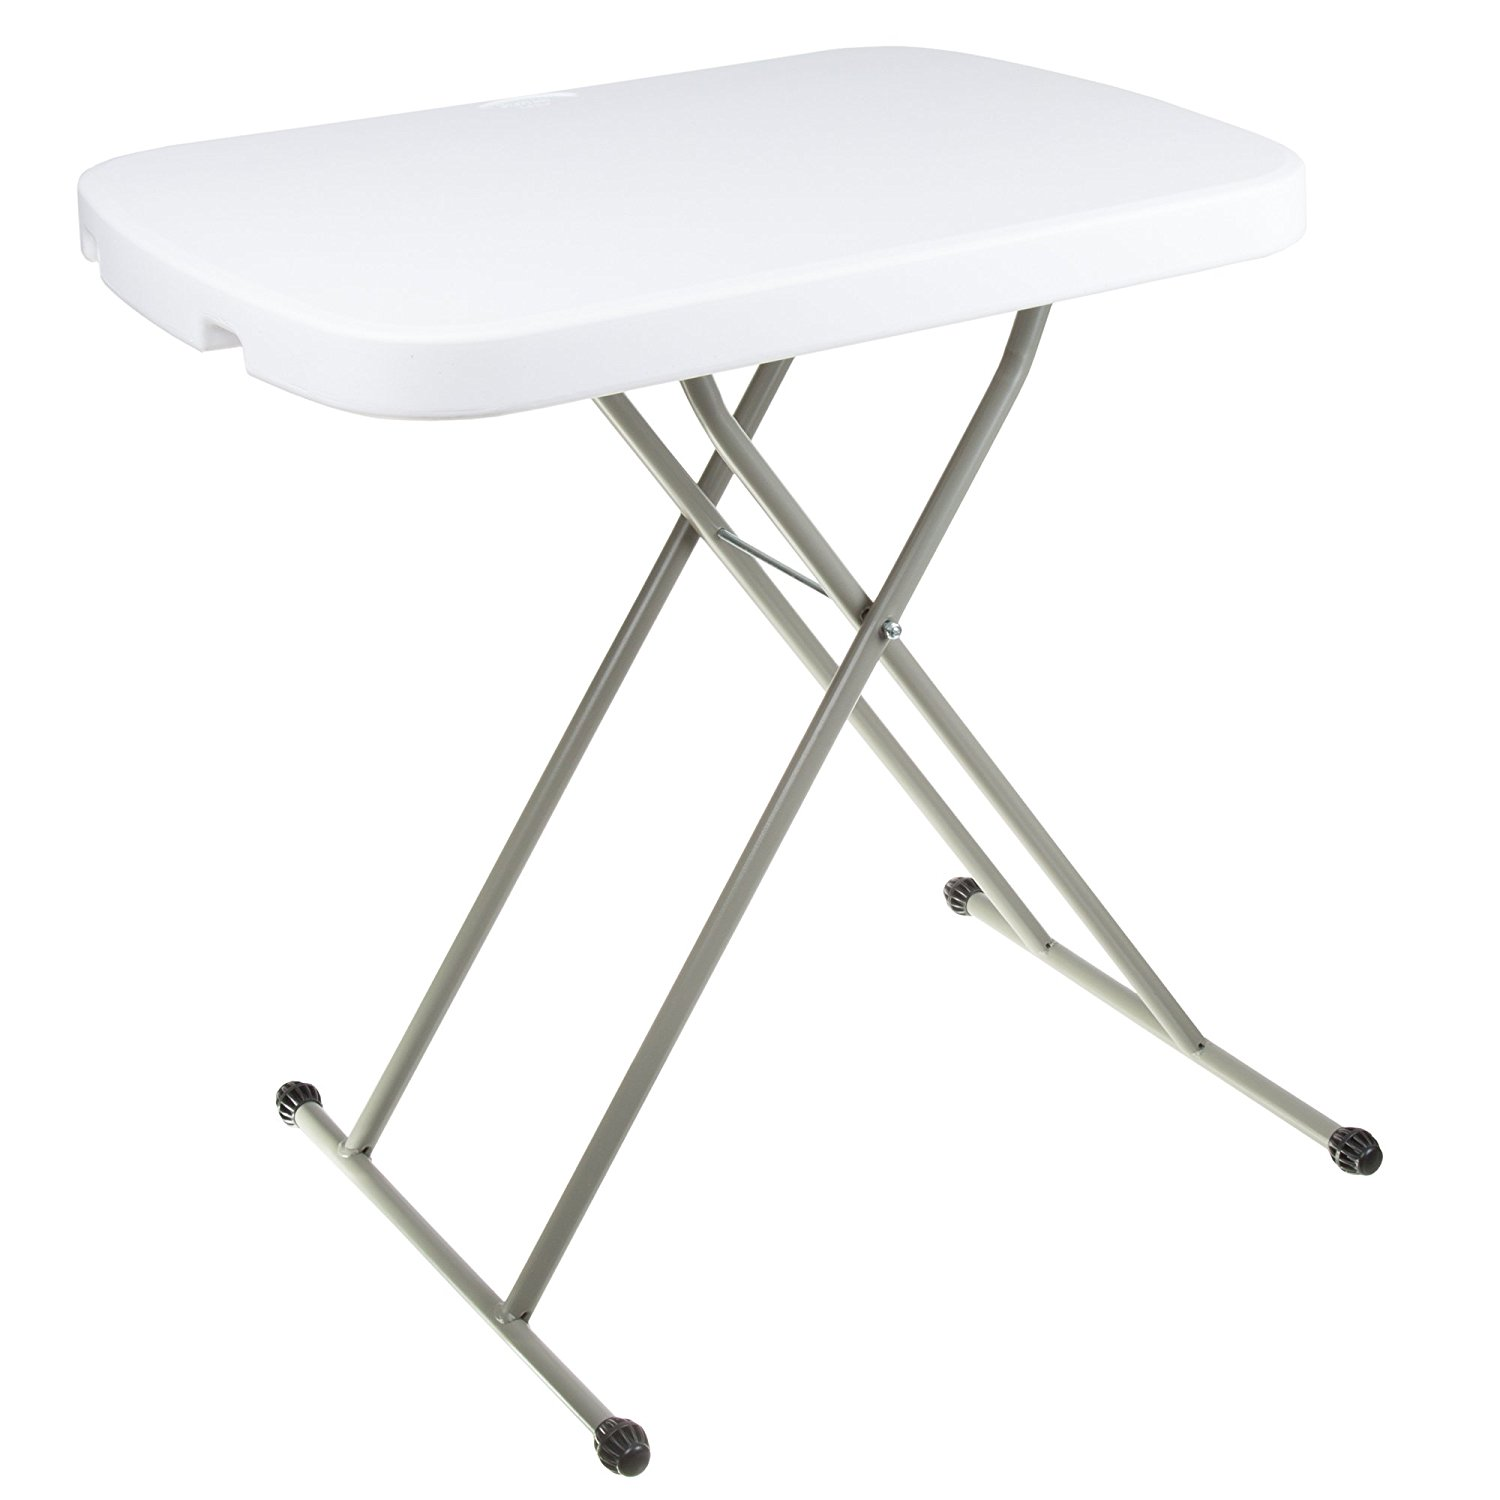 Folding Table, Foldable Table and TV Tray by , 26 x 18 x 27 (Great for Laptops), MULTIFUNCTIONAL... by